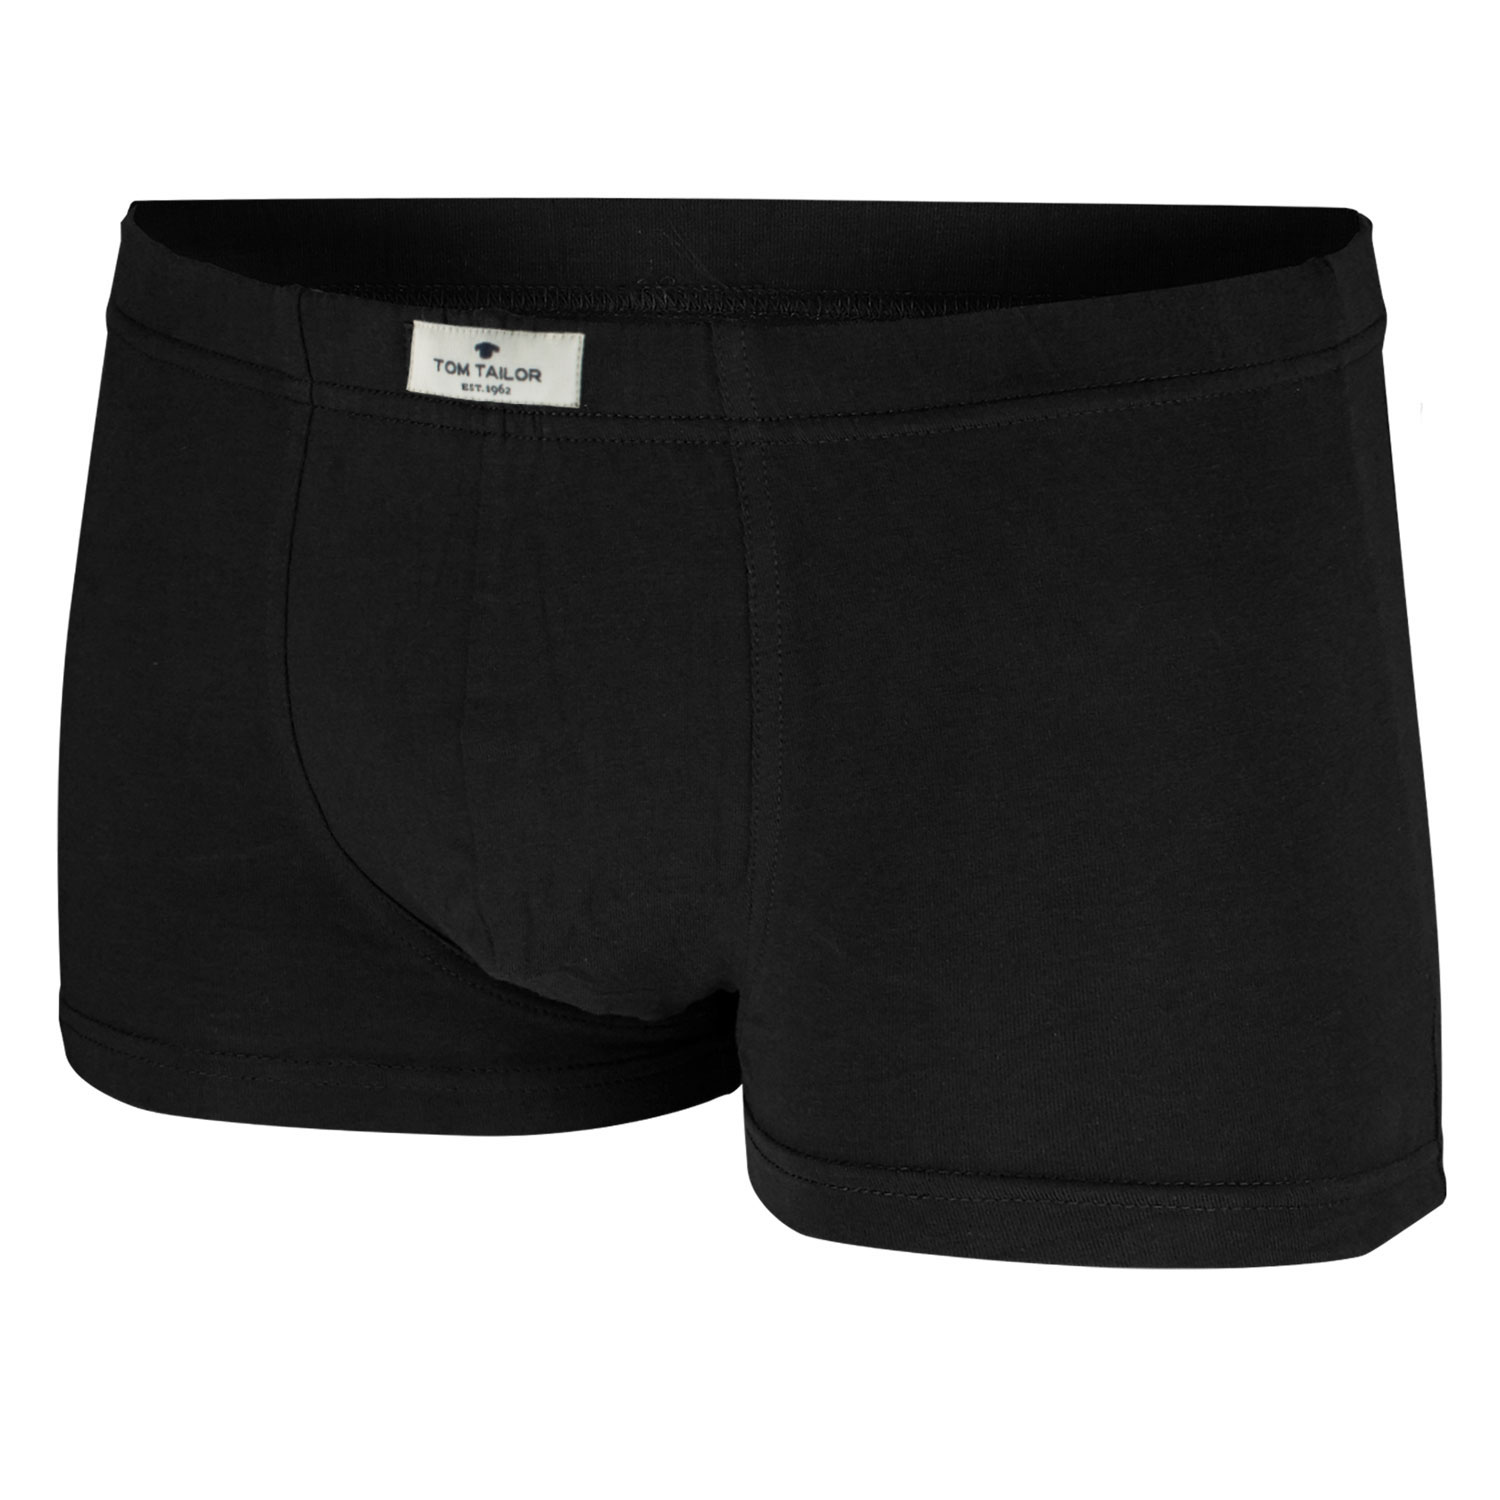 Tom Tailor Boxershorts 3er Pack Briefs Pants farbig schwarz – Bild 4